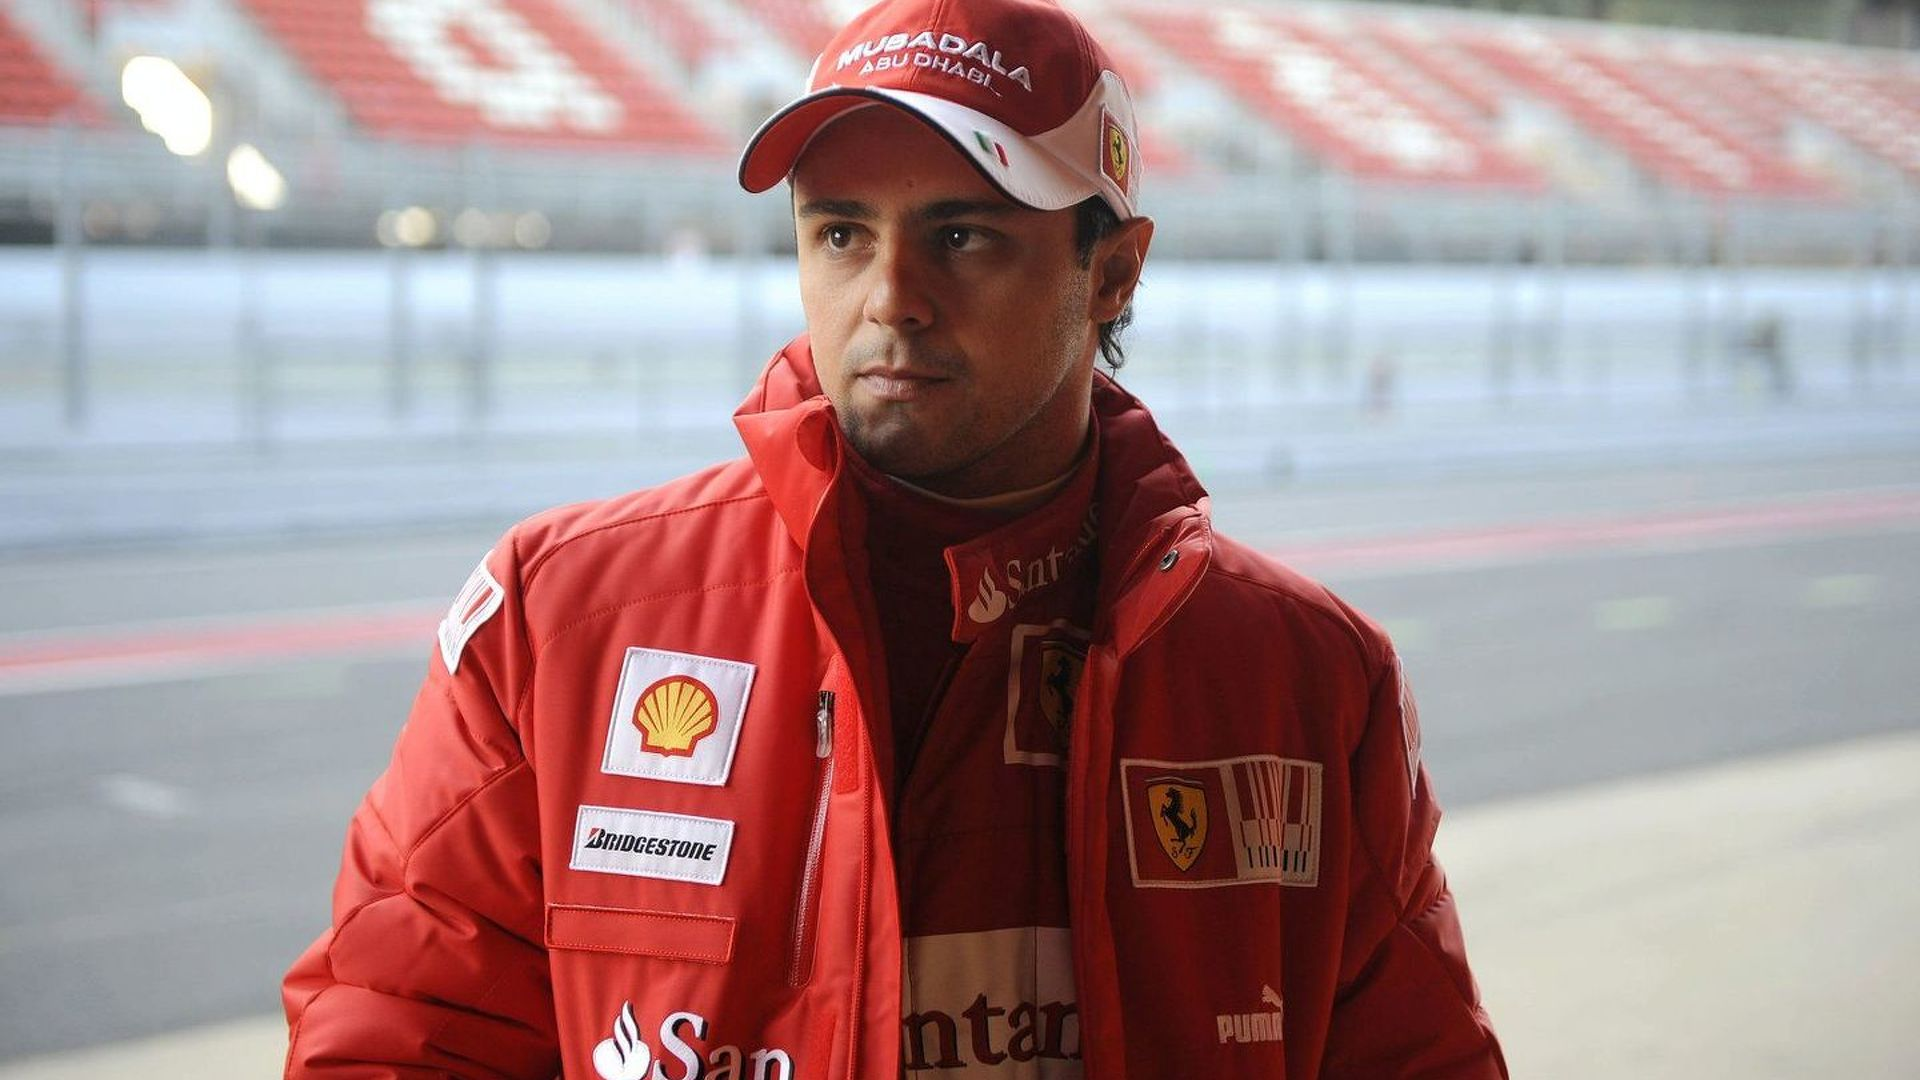 Ecclestone welcomes Chandhok, Massa slams new teams